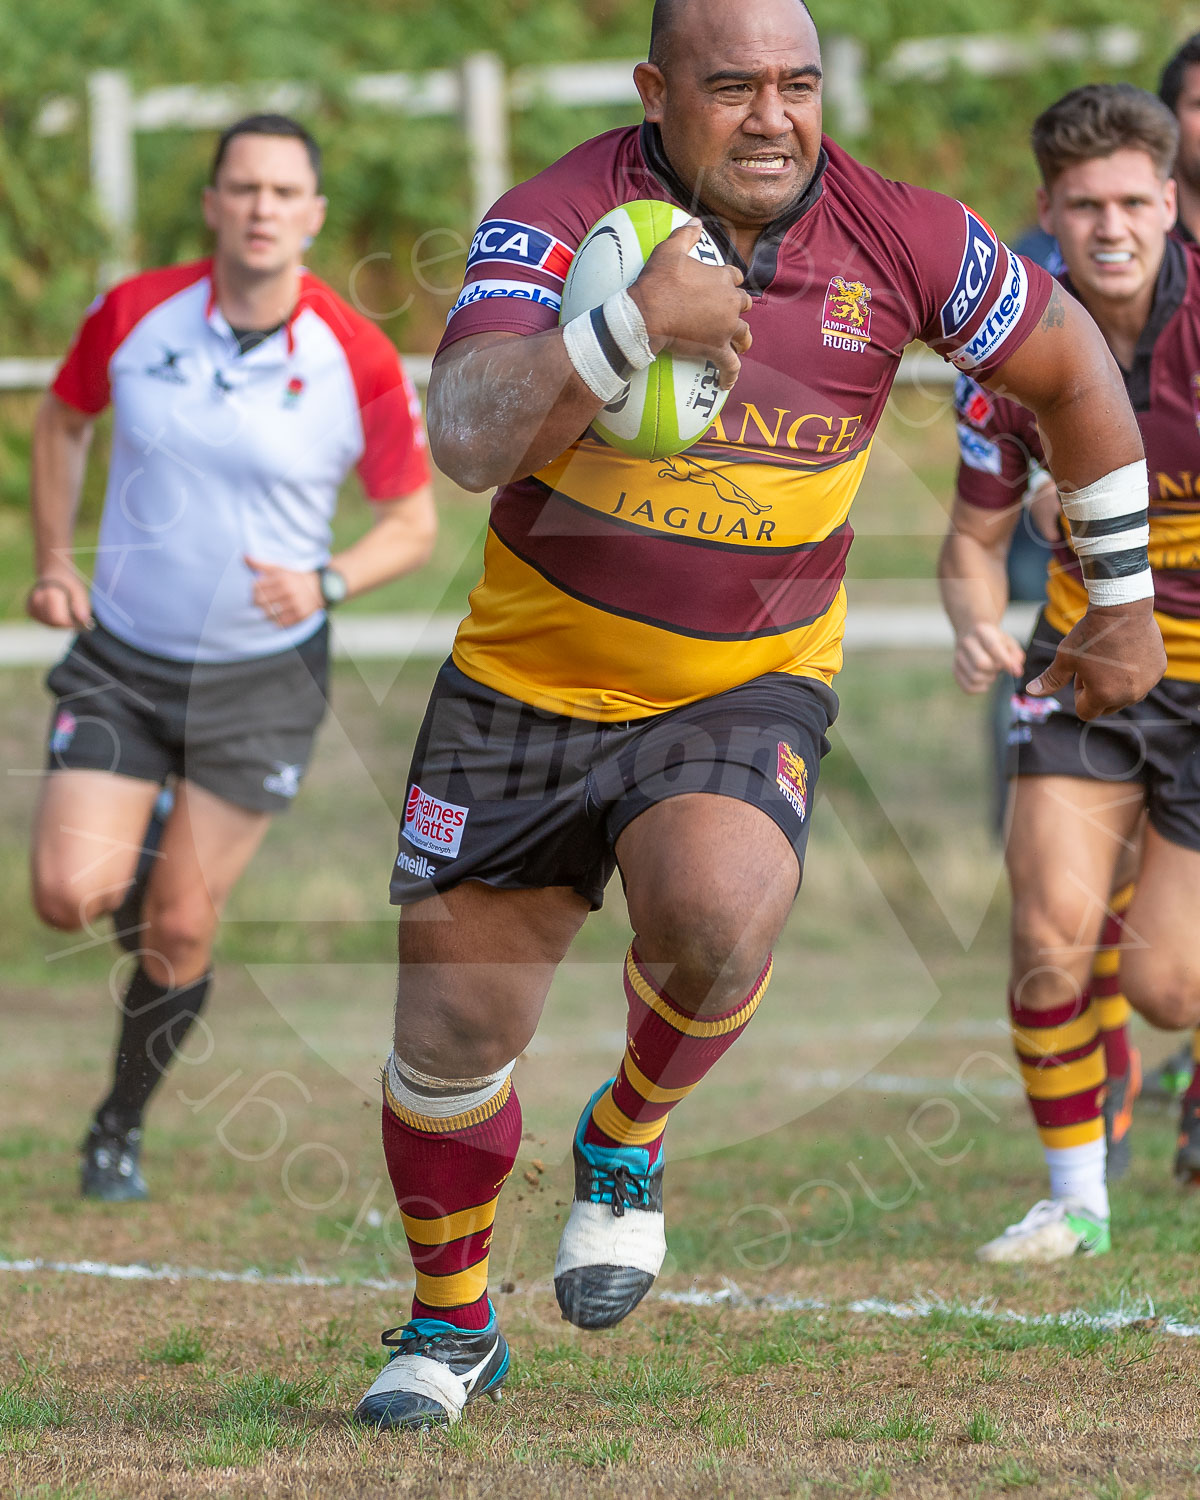 Aleki Lutui running in an early try (Photo: Iain Frankish, Actuance Photography)